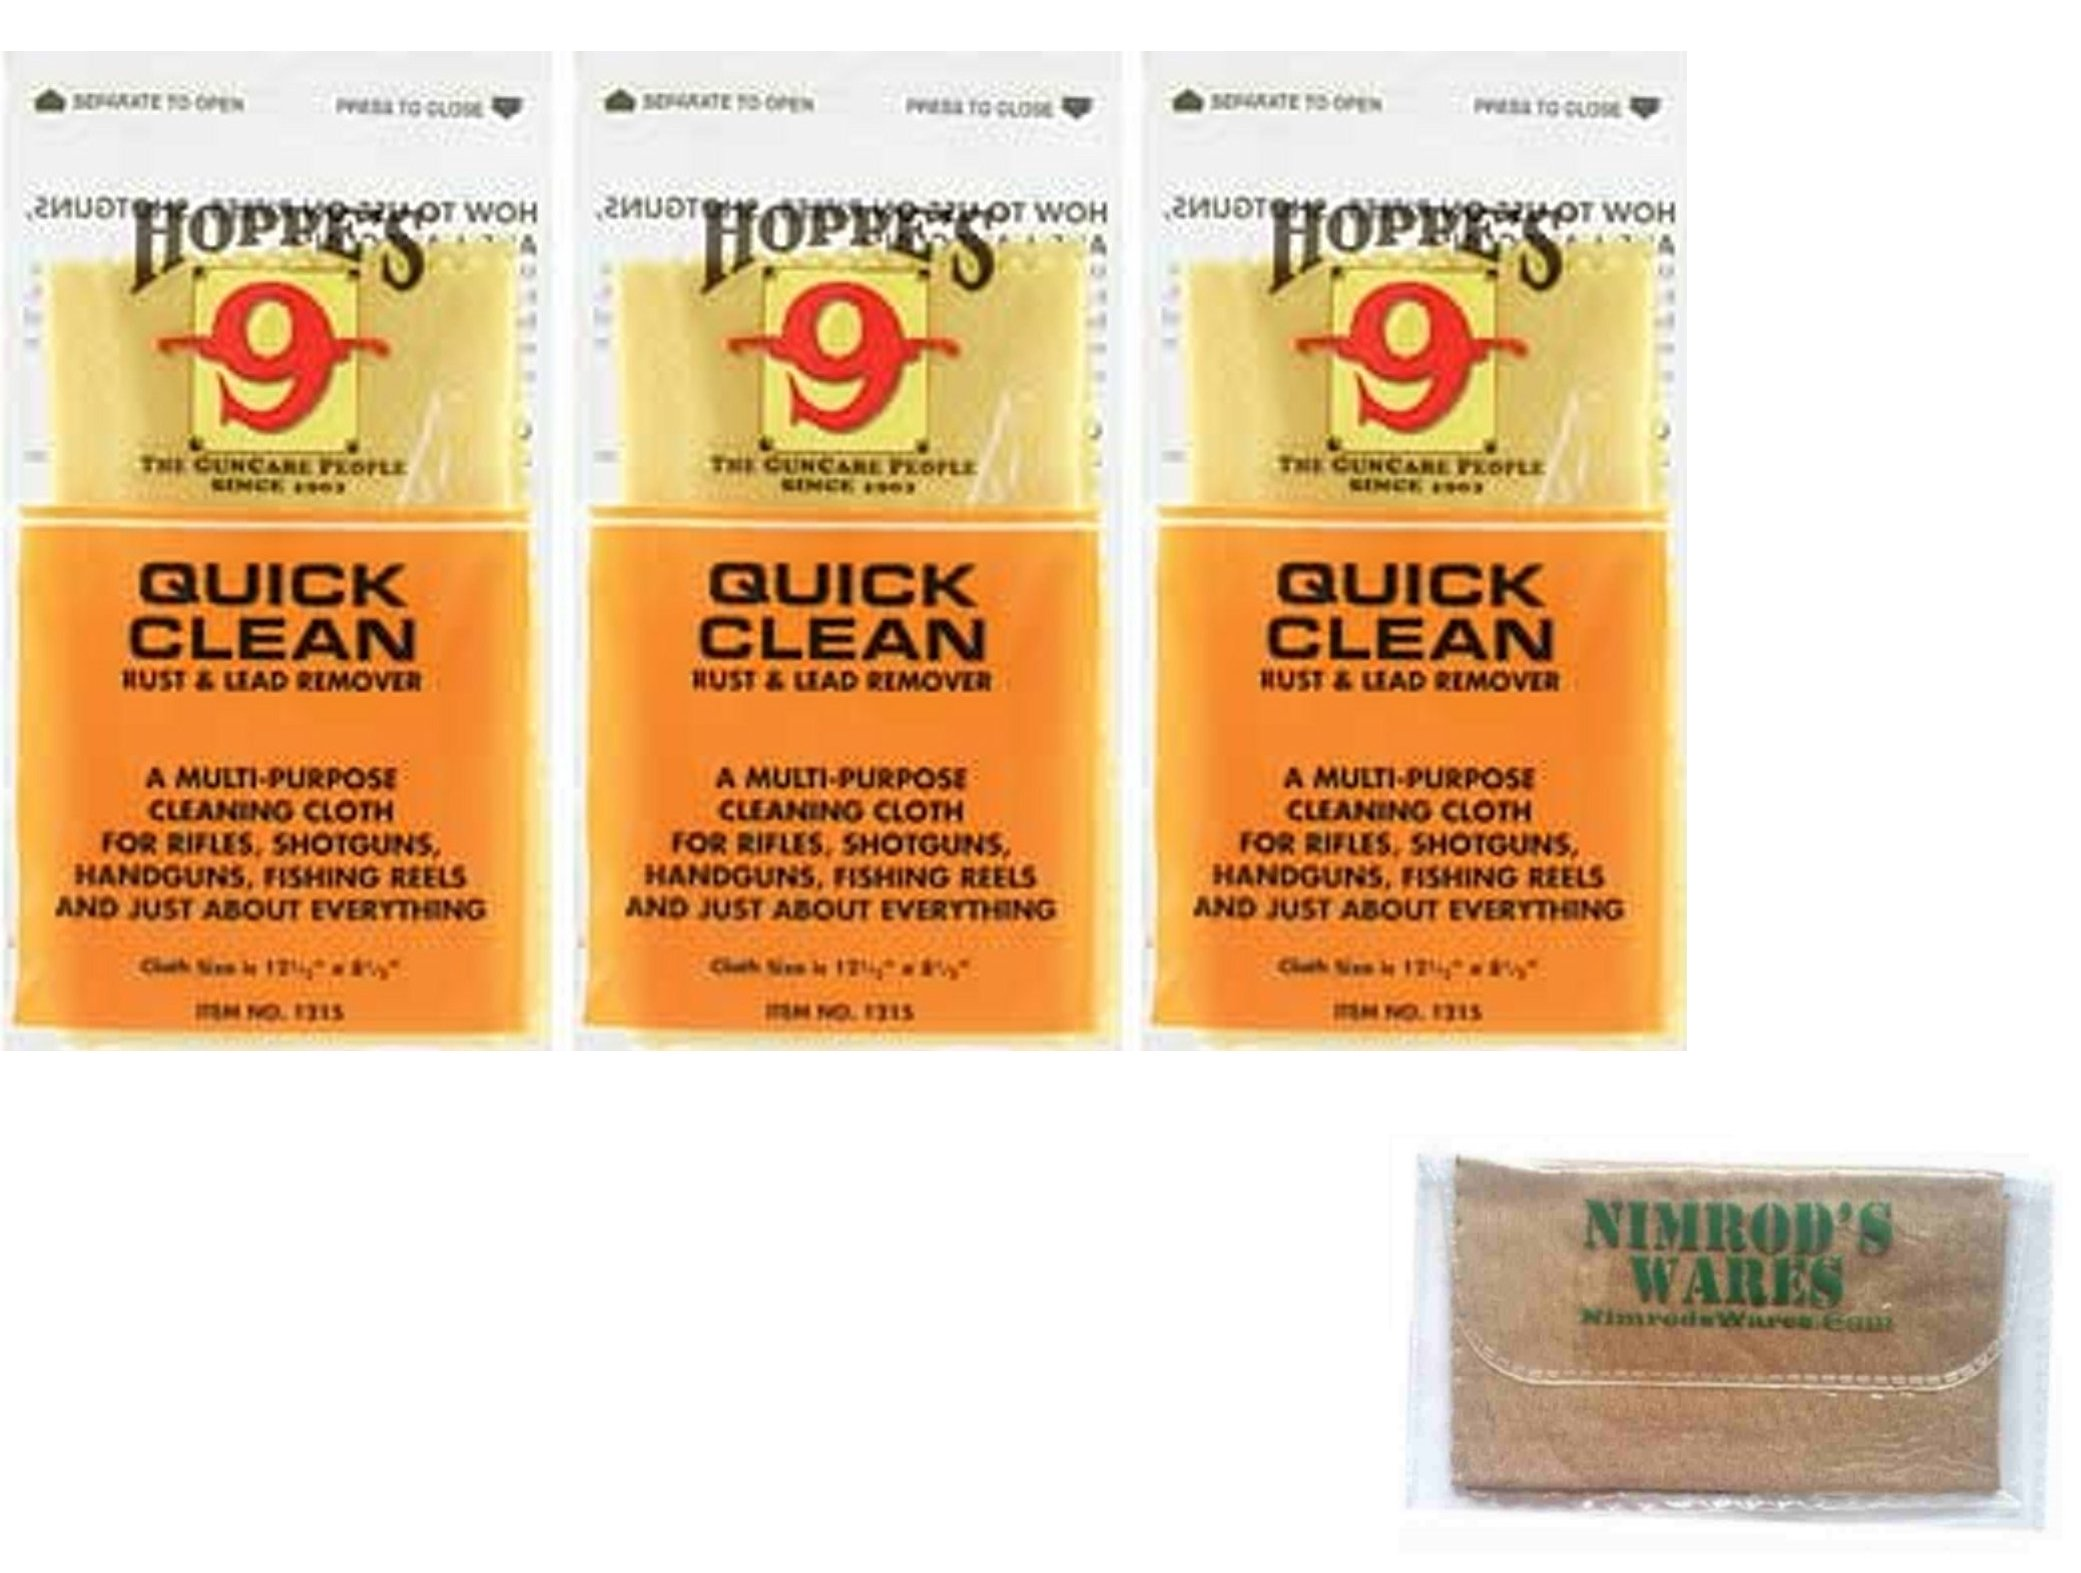 3-PACK Hoppe's Quick Clean RUST & LEAD Remover Cloths 1215 + Nimrod's Wares Microfiber Cloth